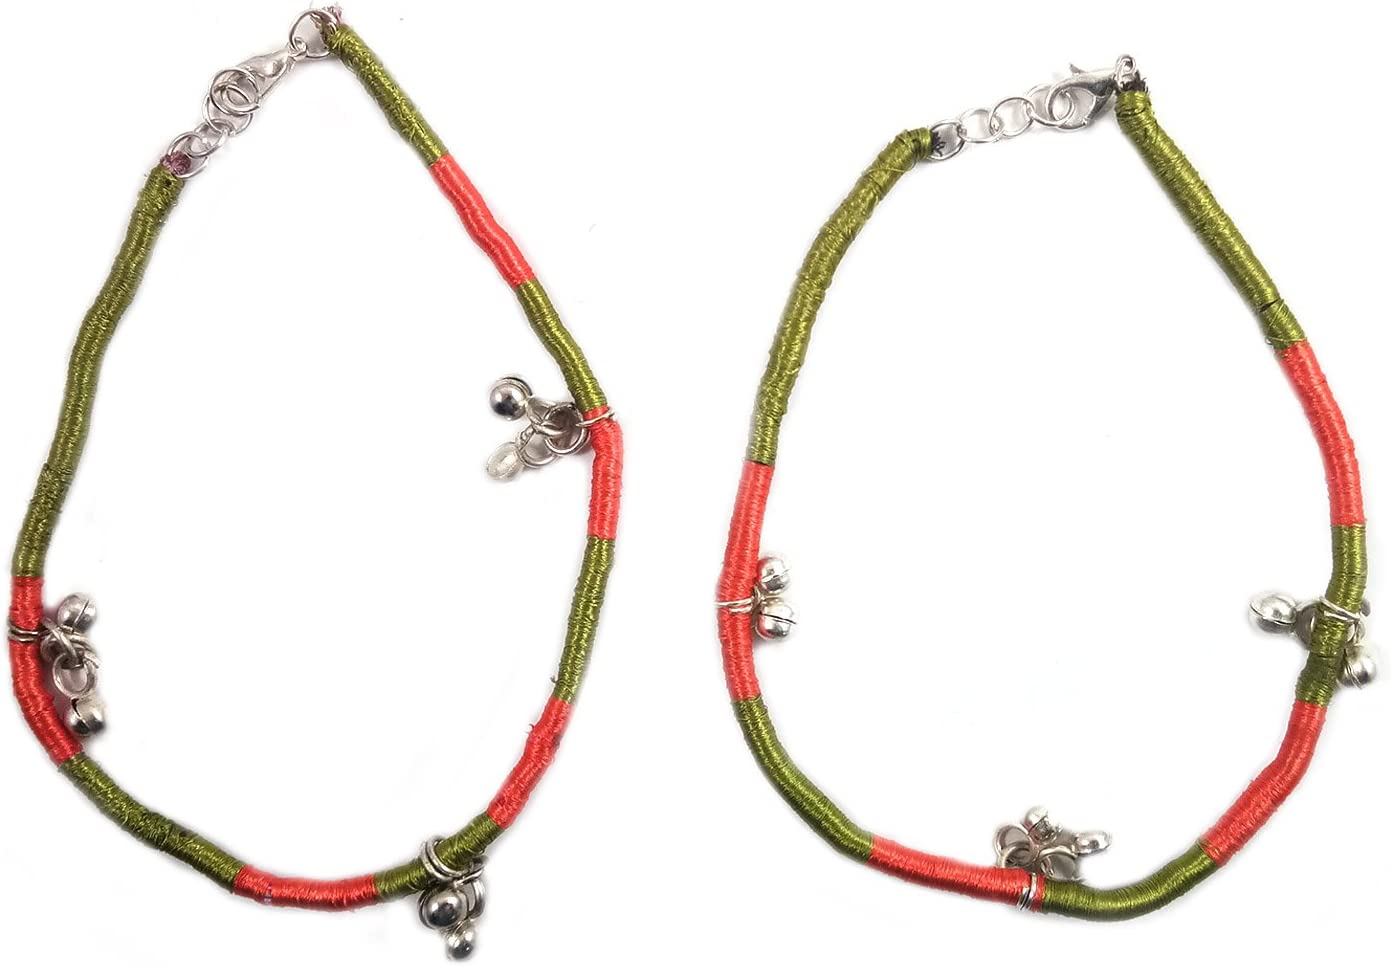 Set of 2 Crochet Anklets with Ghungroo Beads Beautiful Hand Craft Retro Vintage Fashion Foot Ankle Bracelet Indian Traditional Fashion Jewellery for Women's & Girls